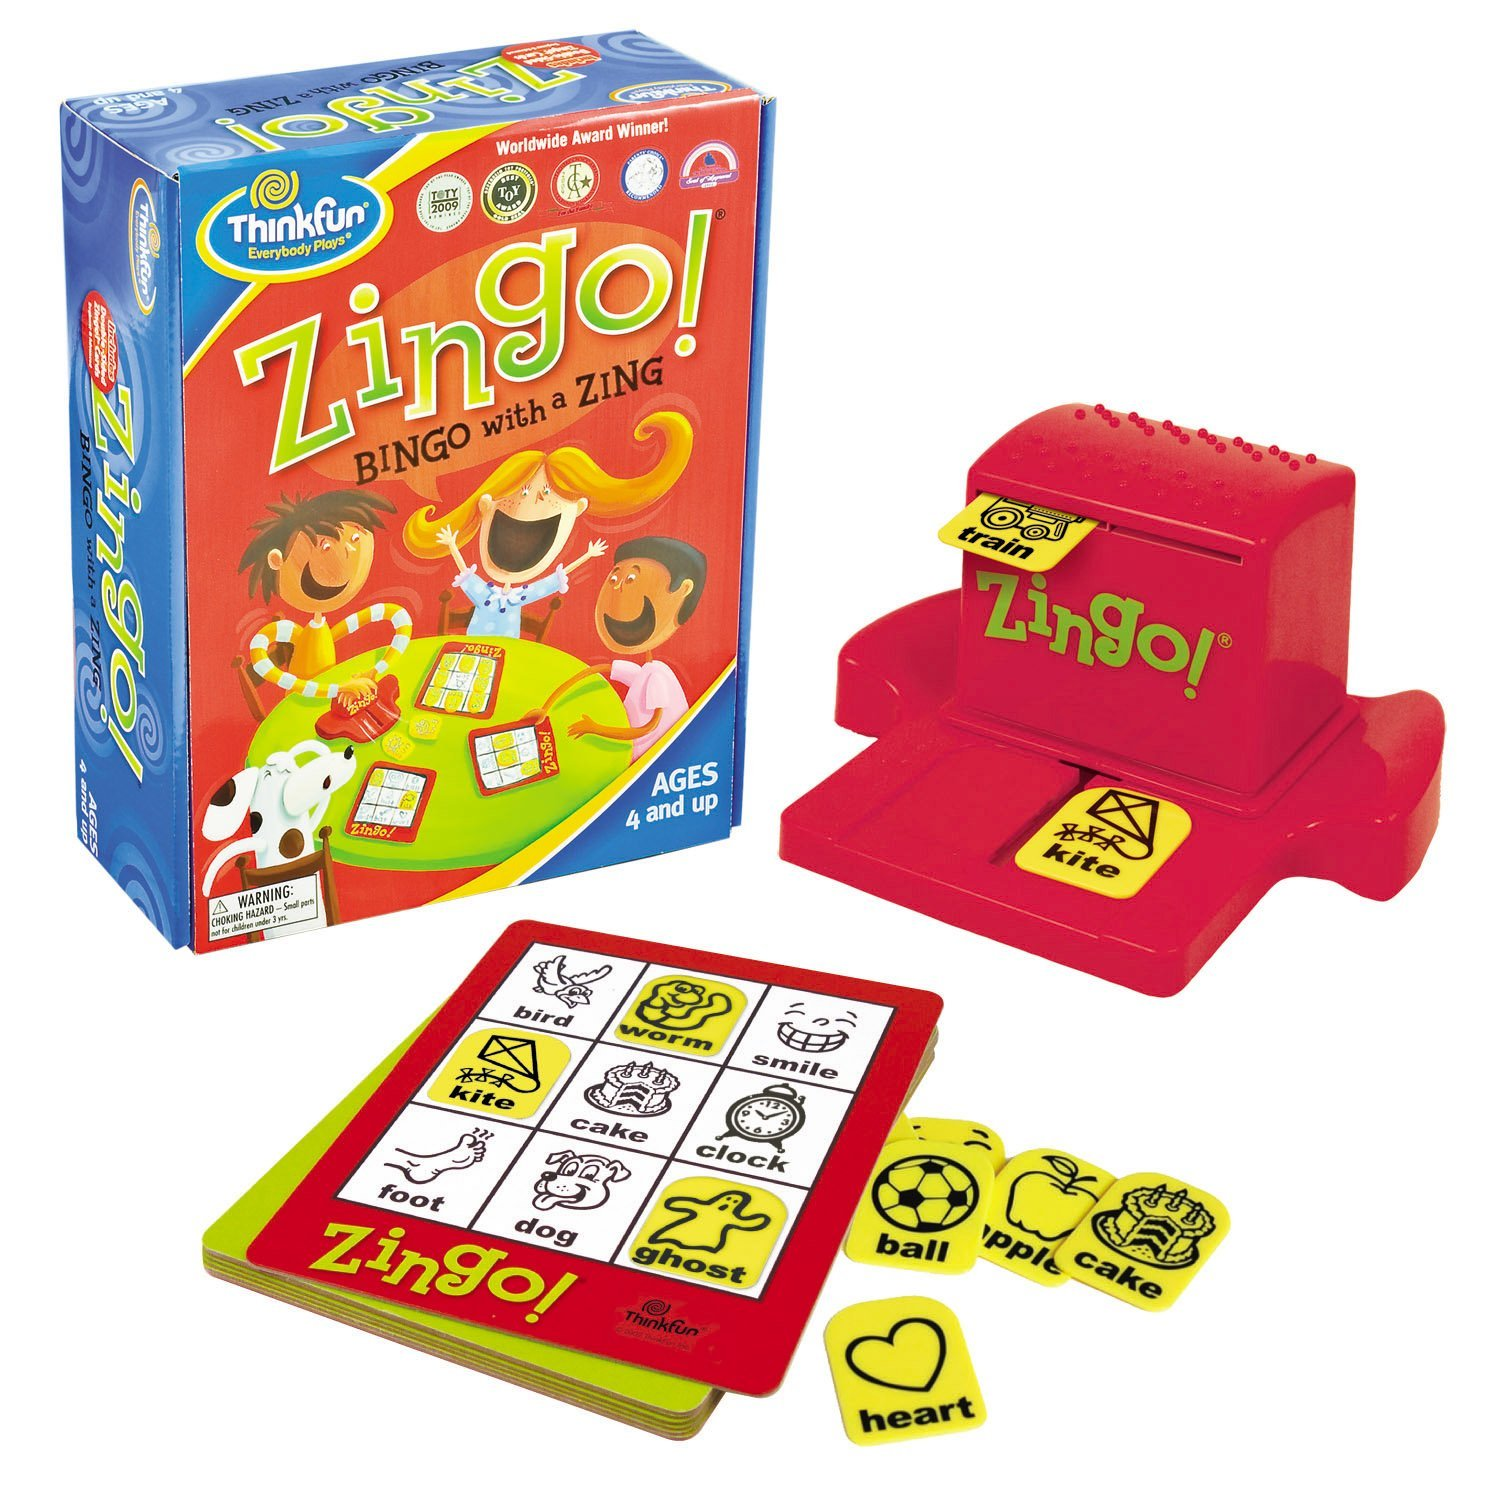 Toys For Games : Educational board games for kids tgif this grandma